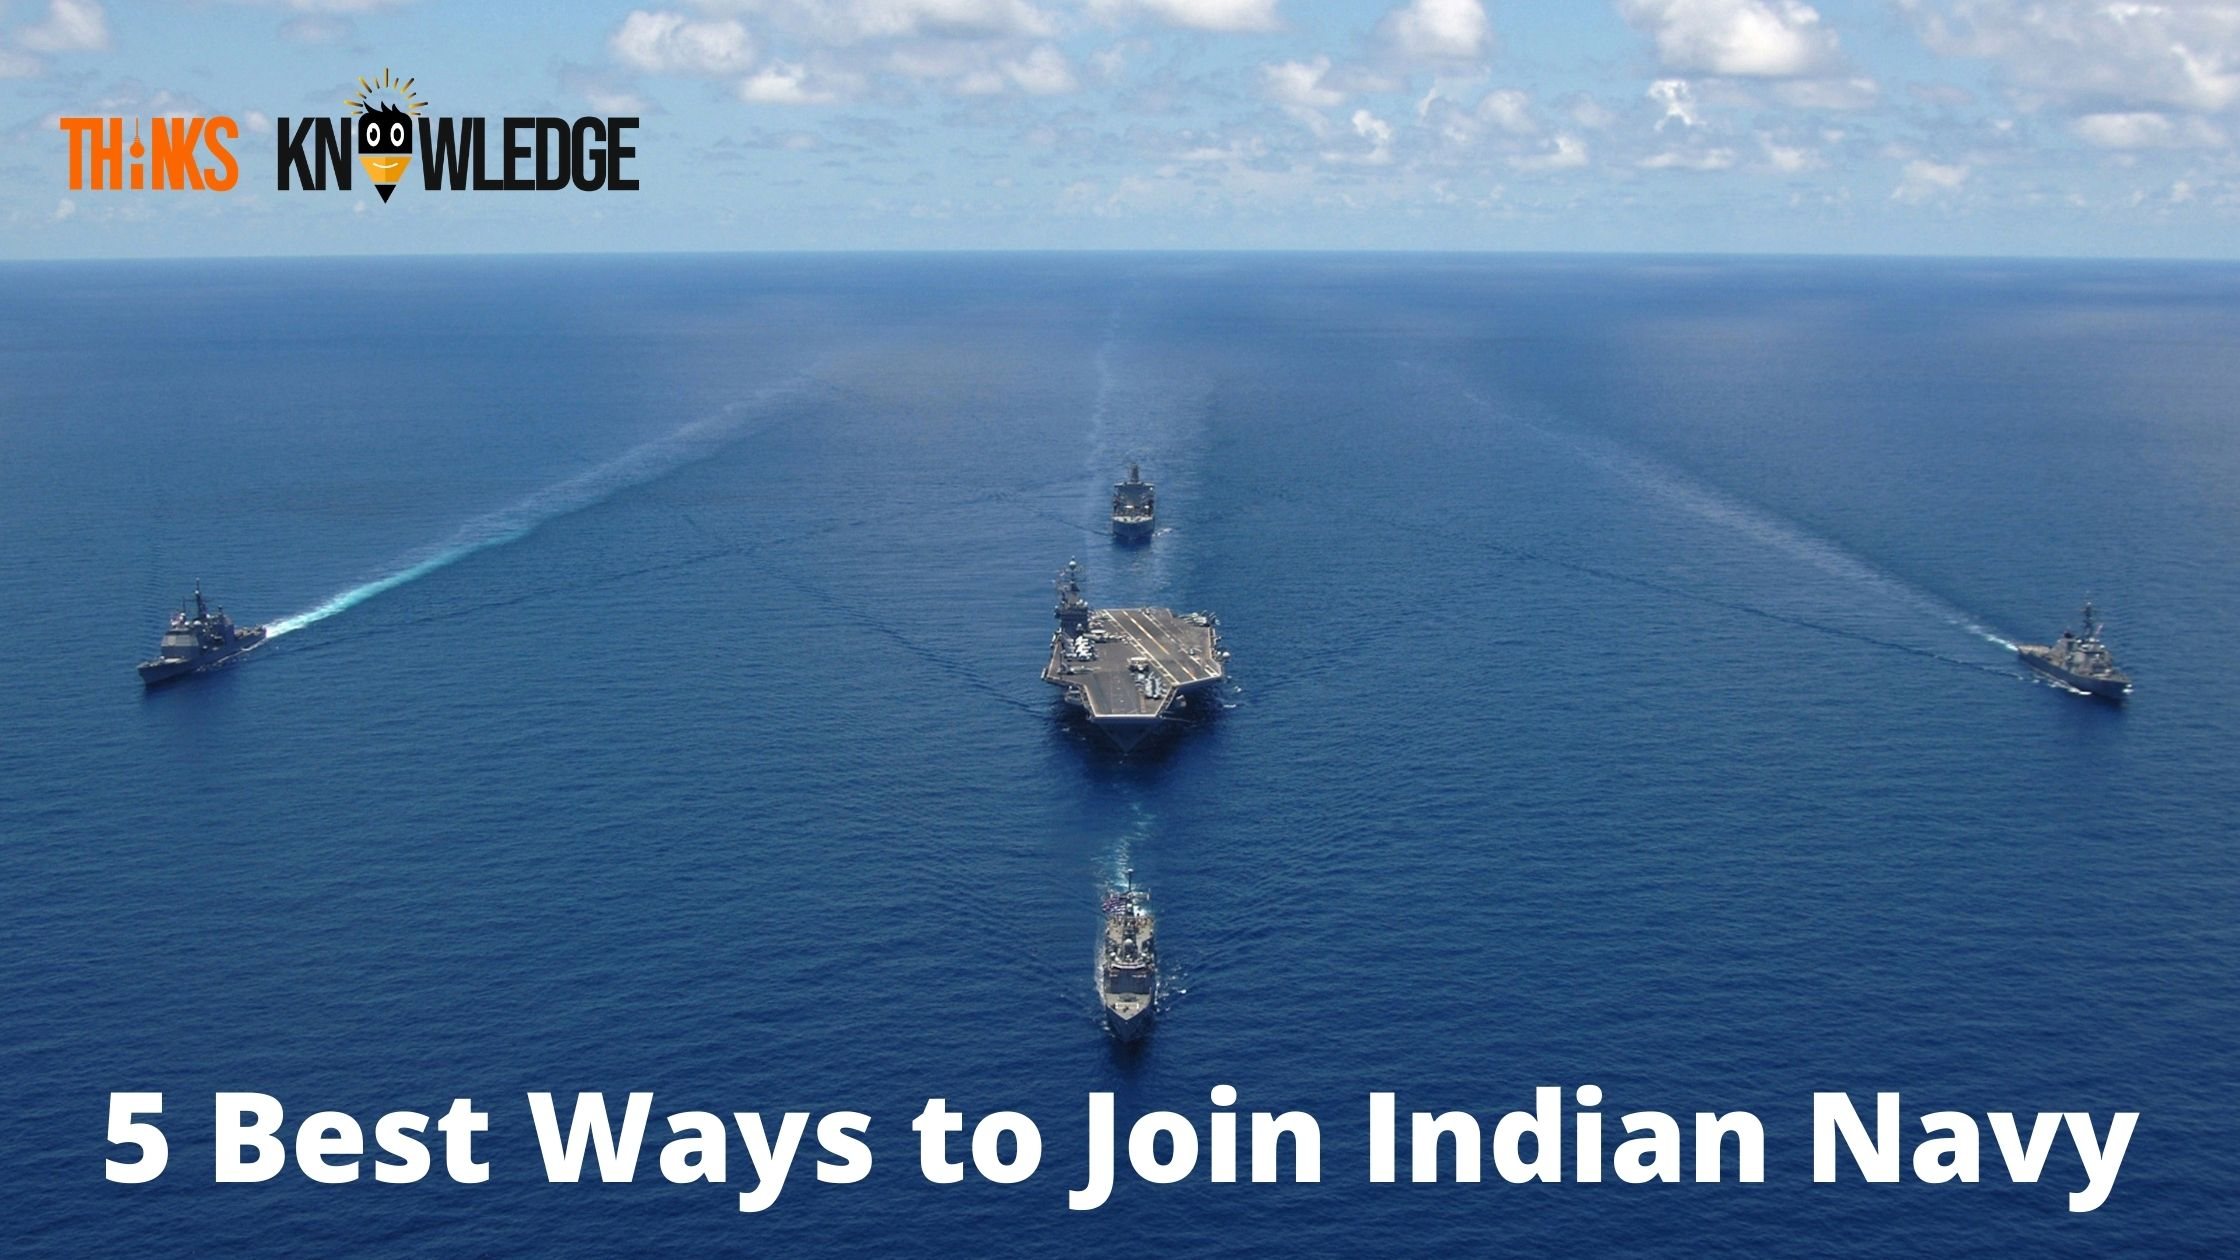 Ways to Join Indian Navy